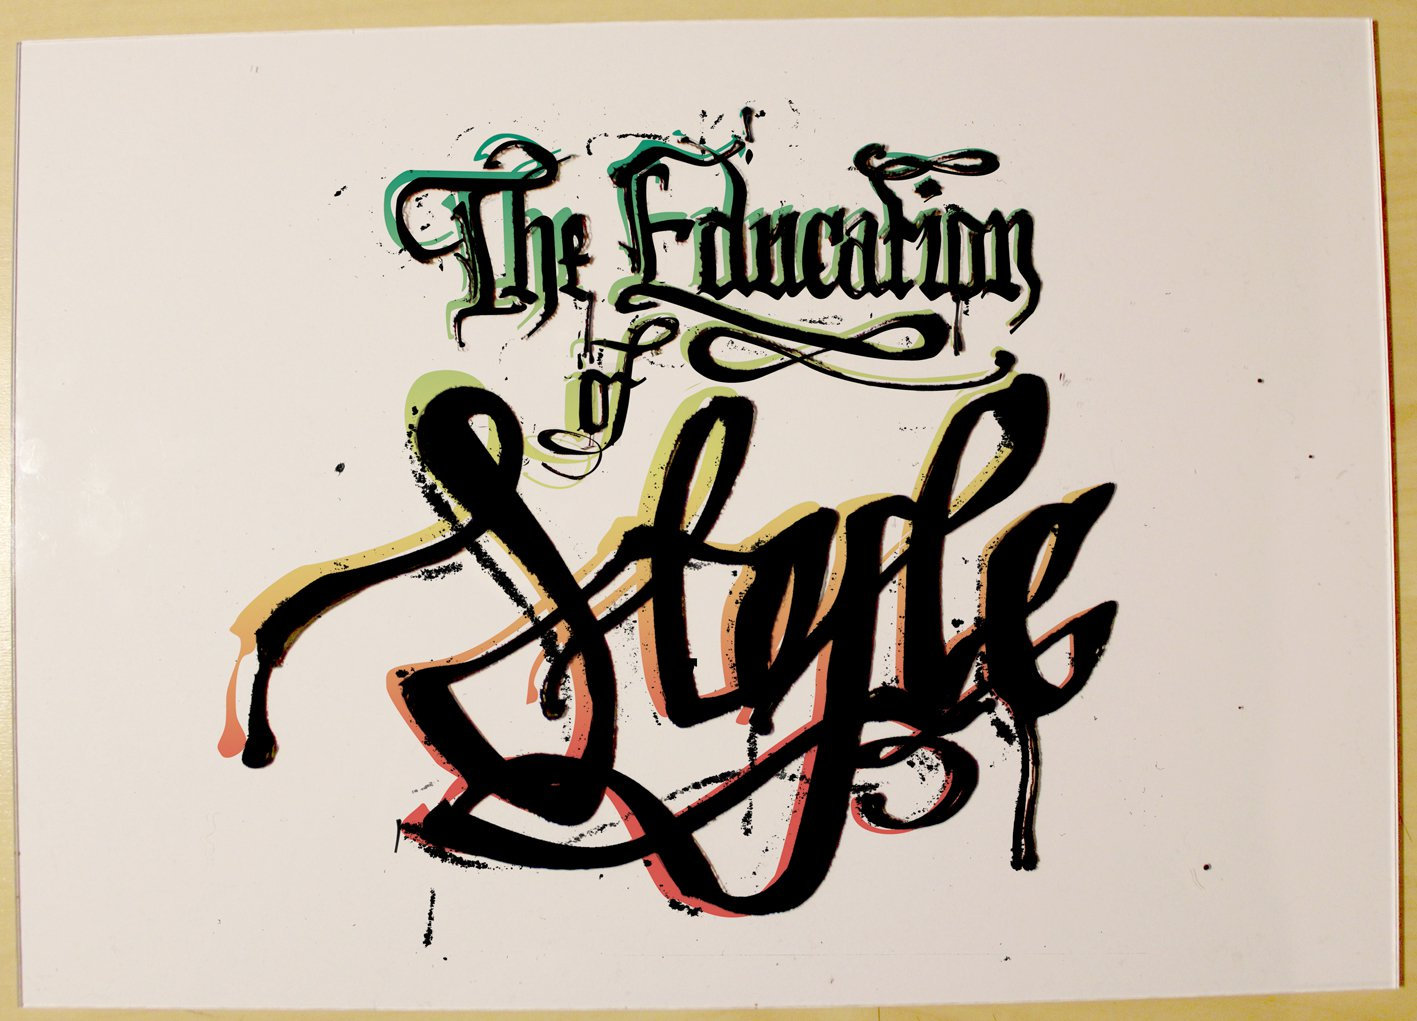 education of style graffiti contest entry